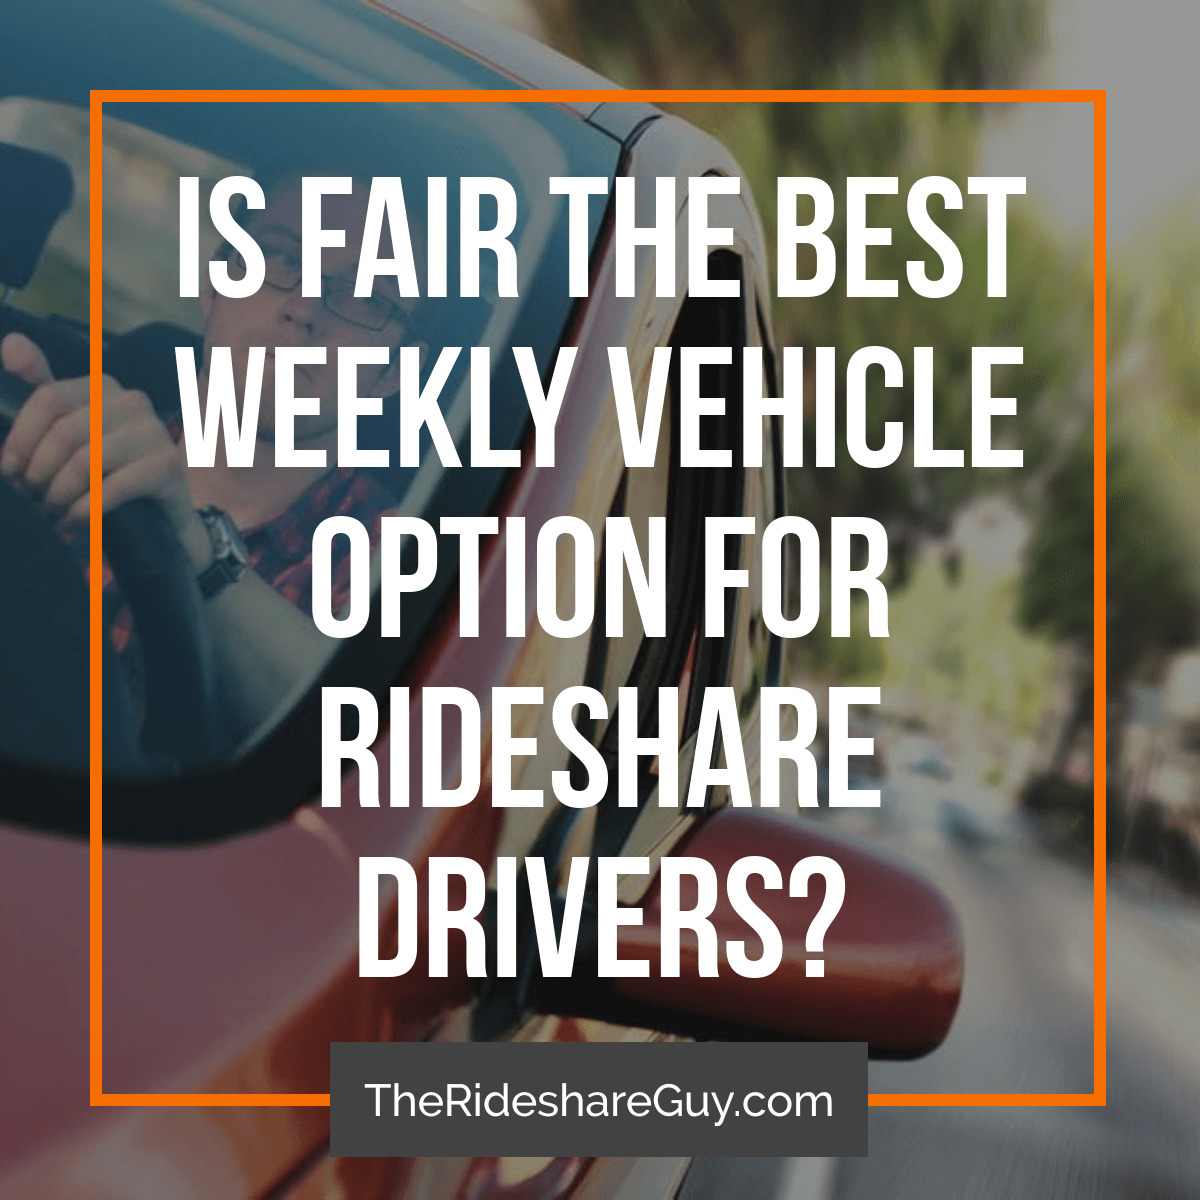 There are a lot of options when it comes to rideshare rentals and leases, but one of the newest options is a company called Fair. We've recently teamed up with Fair to take a look at the offering and highlight what they have for drivers.